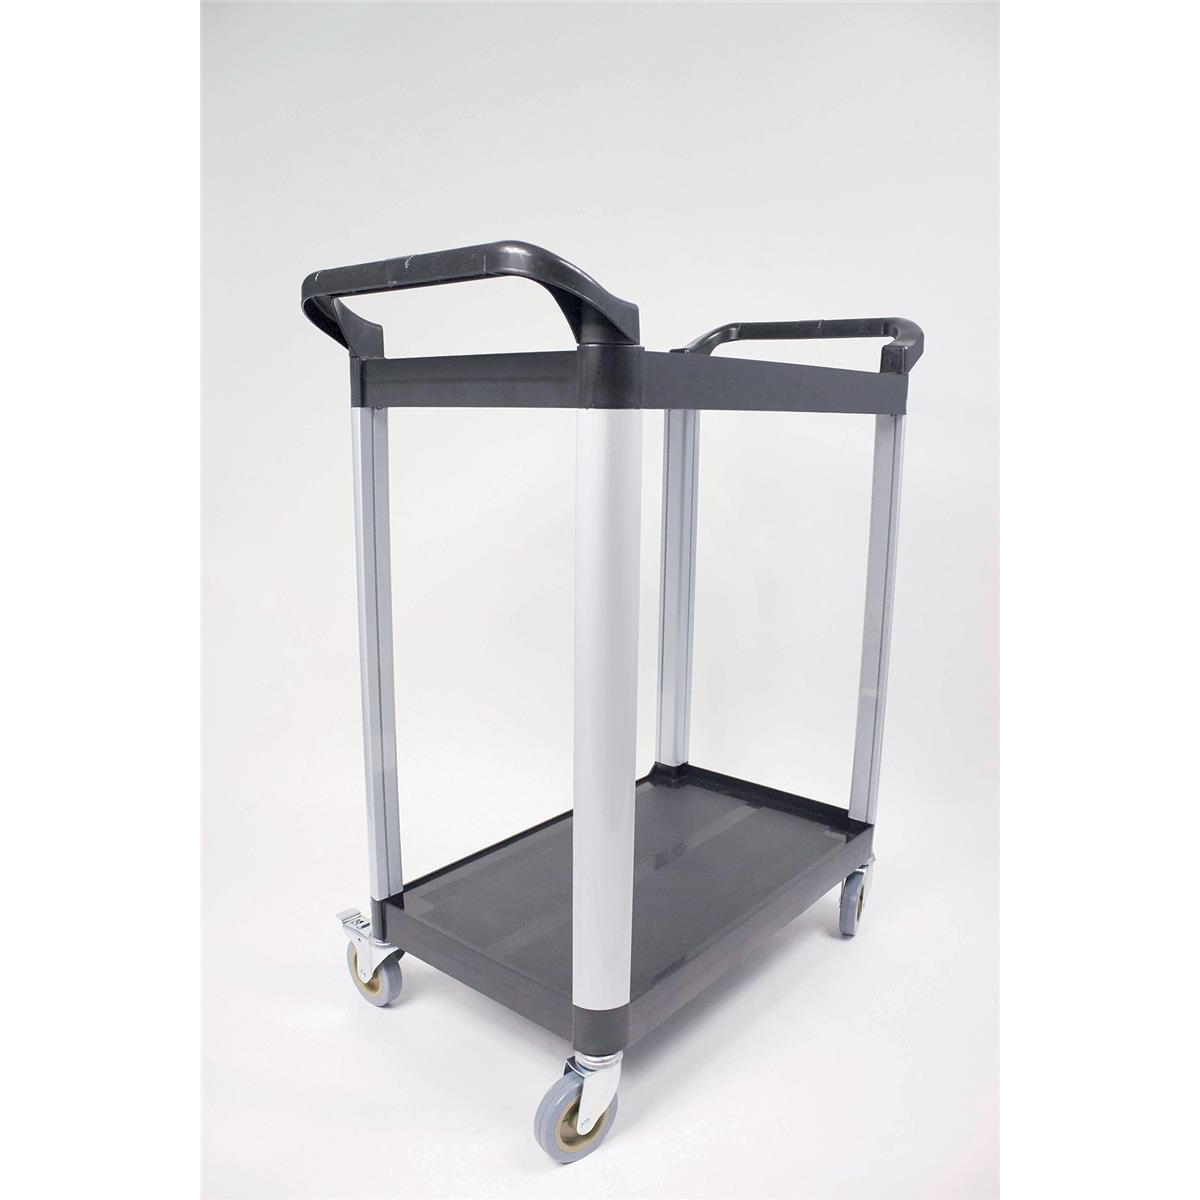 Trolleys 5 Star Facilities Utility Tray Trolley Standard 2 Shelf Capacity 100kg W460xD750xH940mm